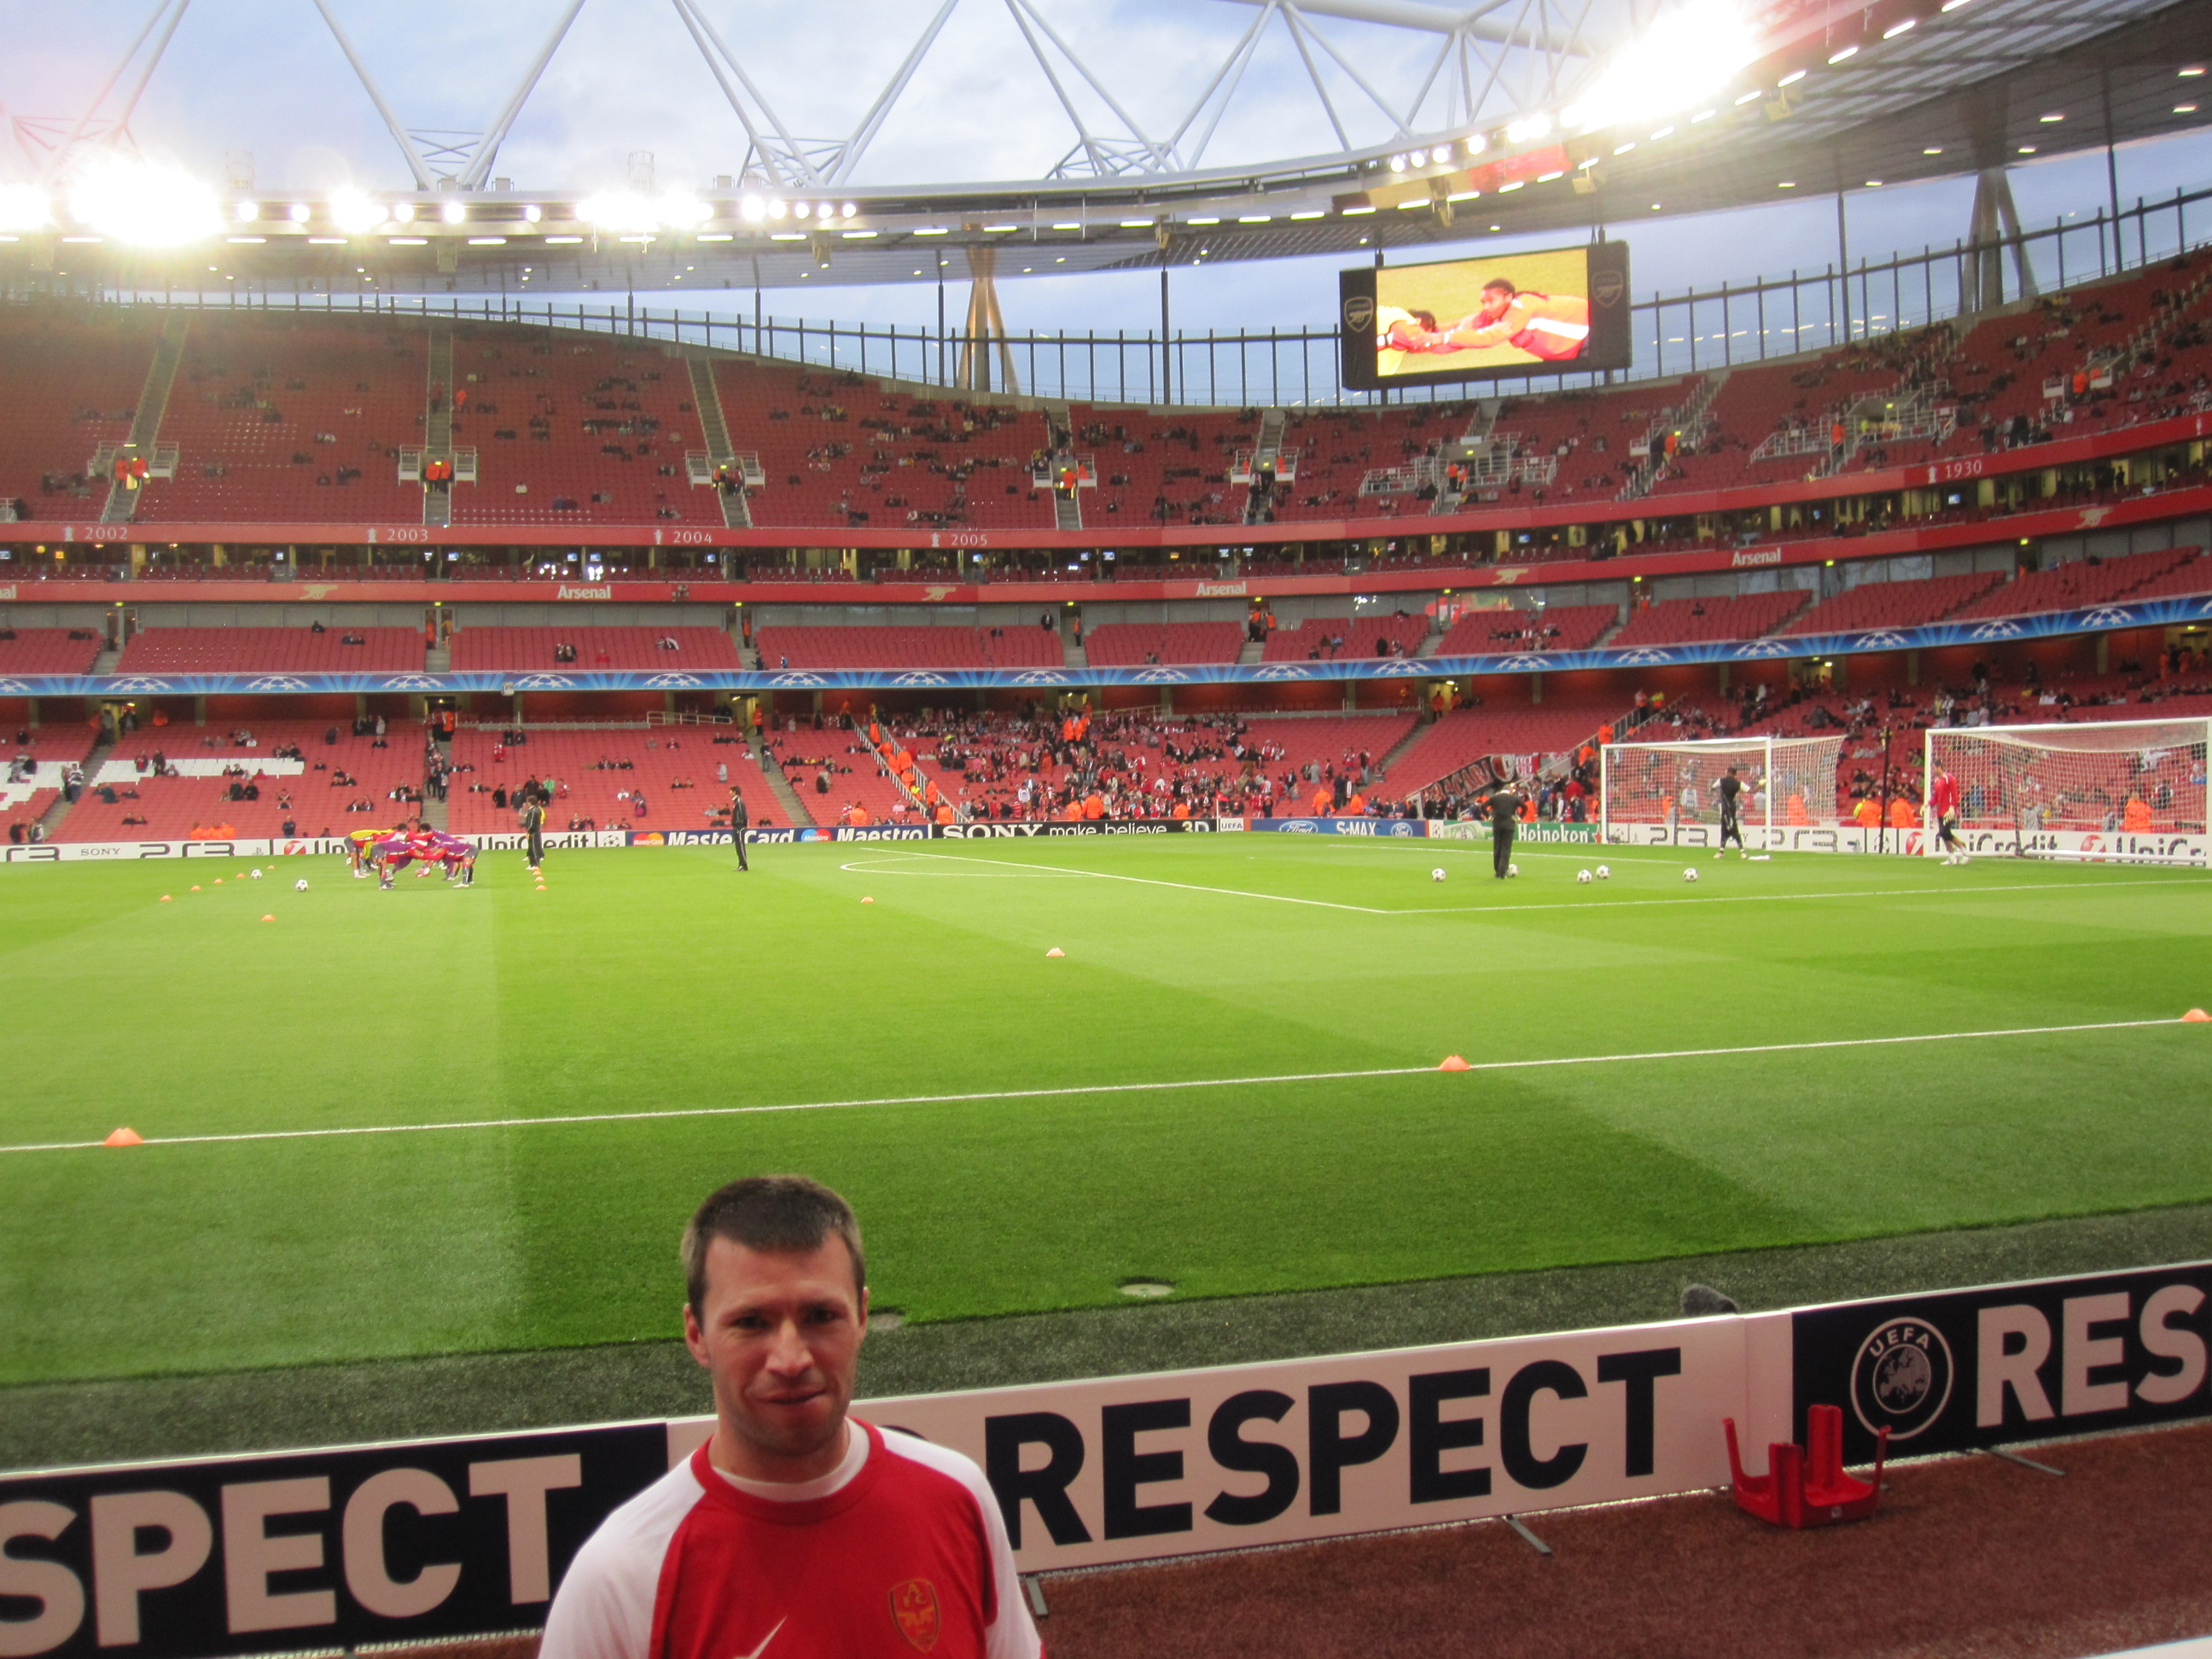 Getting ready for the Gunners!